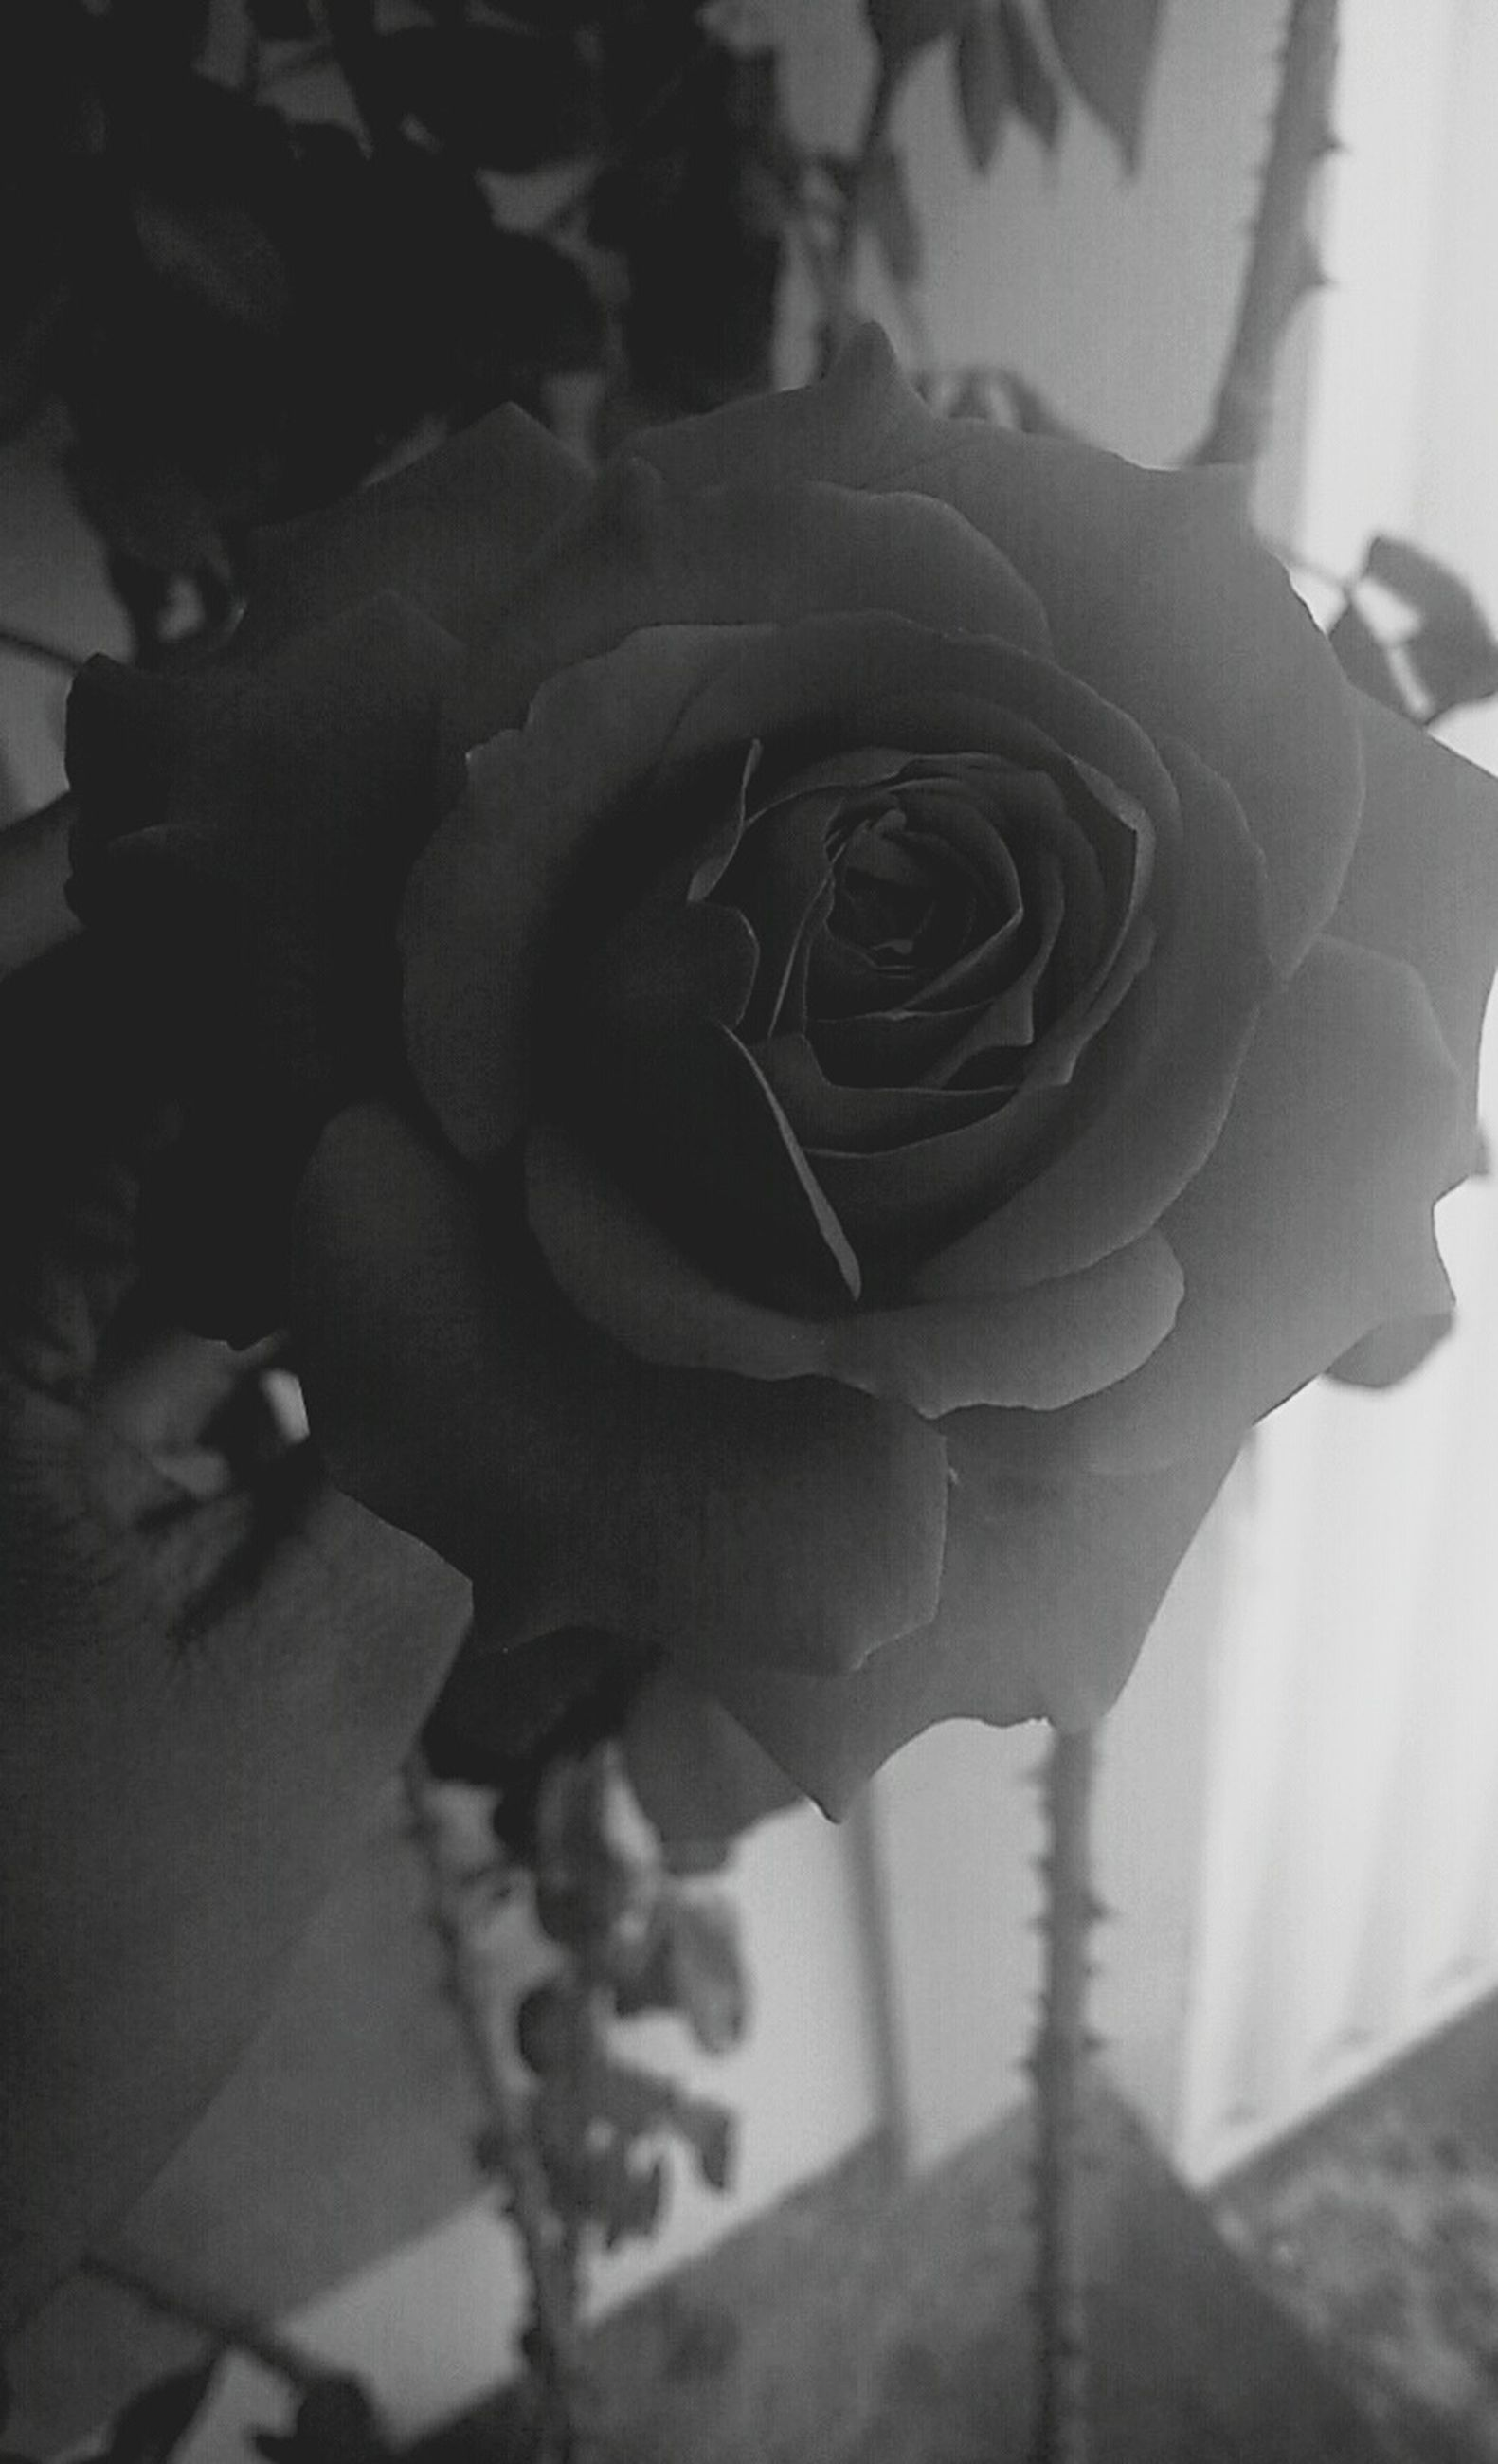 close-up, indoors, flower, focus on foreground, rose - flower, petal, fragility, creativity, art and craft, art, flower head, day, no people, single flower, high angle view, sunlight, shadow, plant, human representation, sculpture